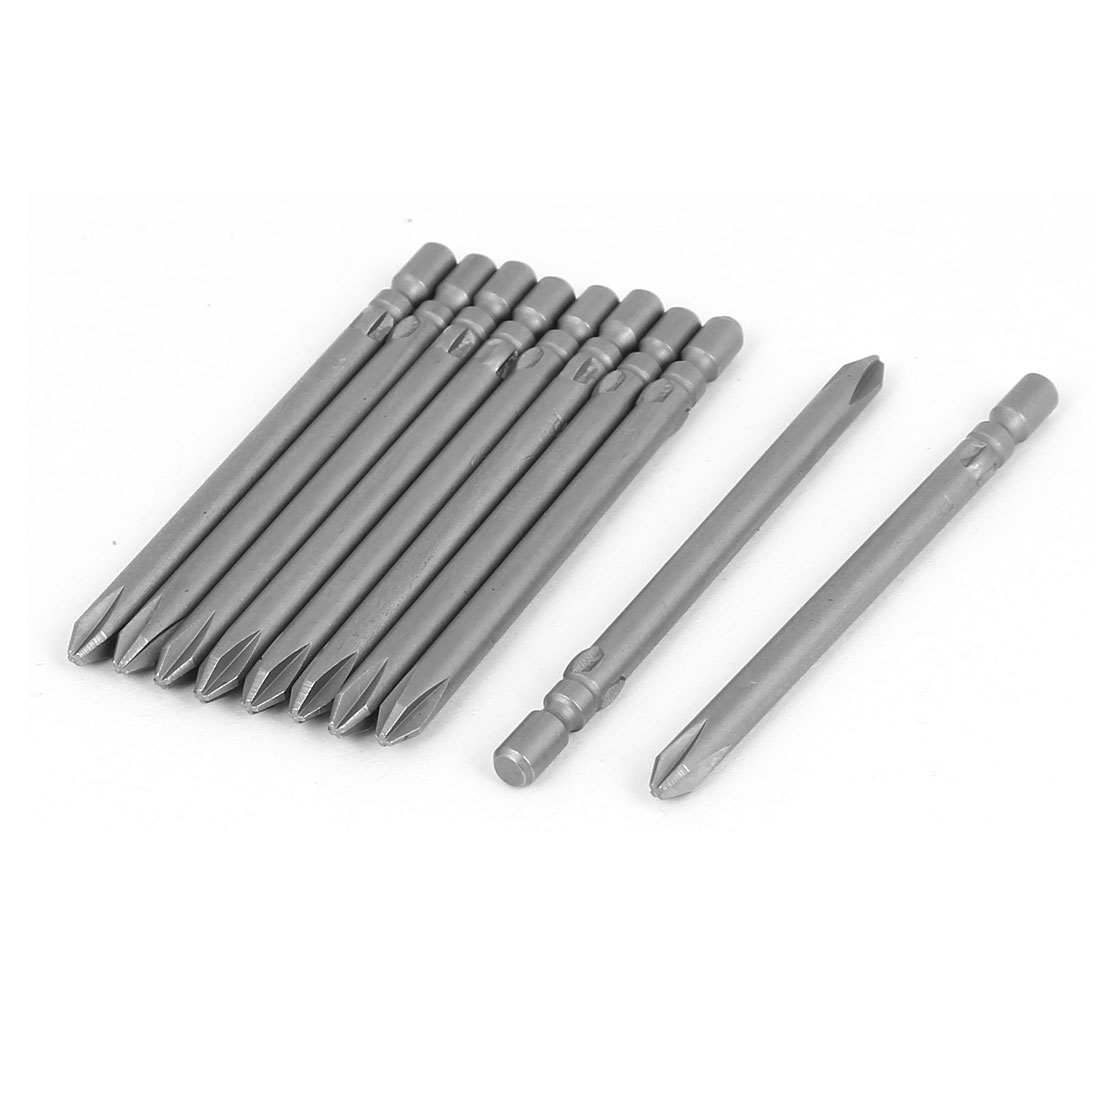 60mm Long 4mm Tip Magnetic S2 Steel Phillips Drive Screwdriver Bit Gray 10 Pcs